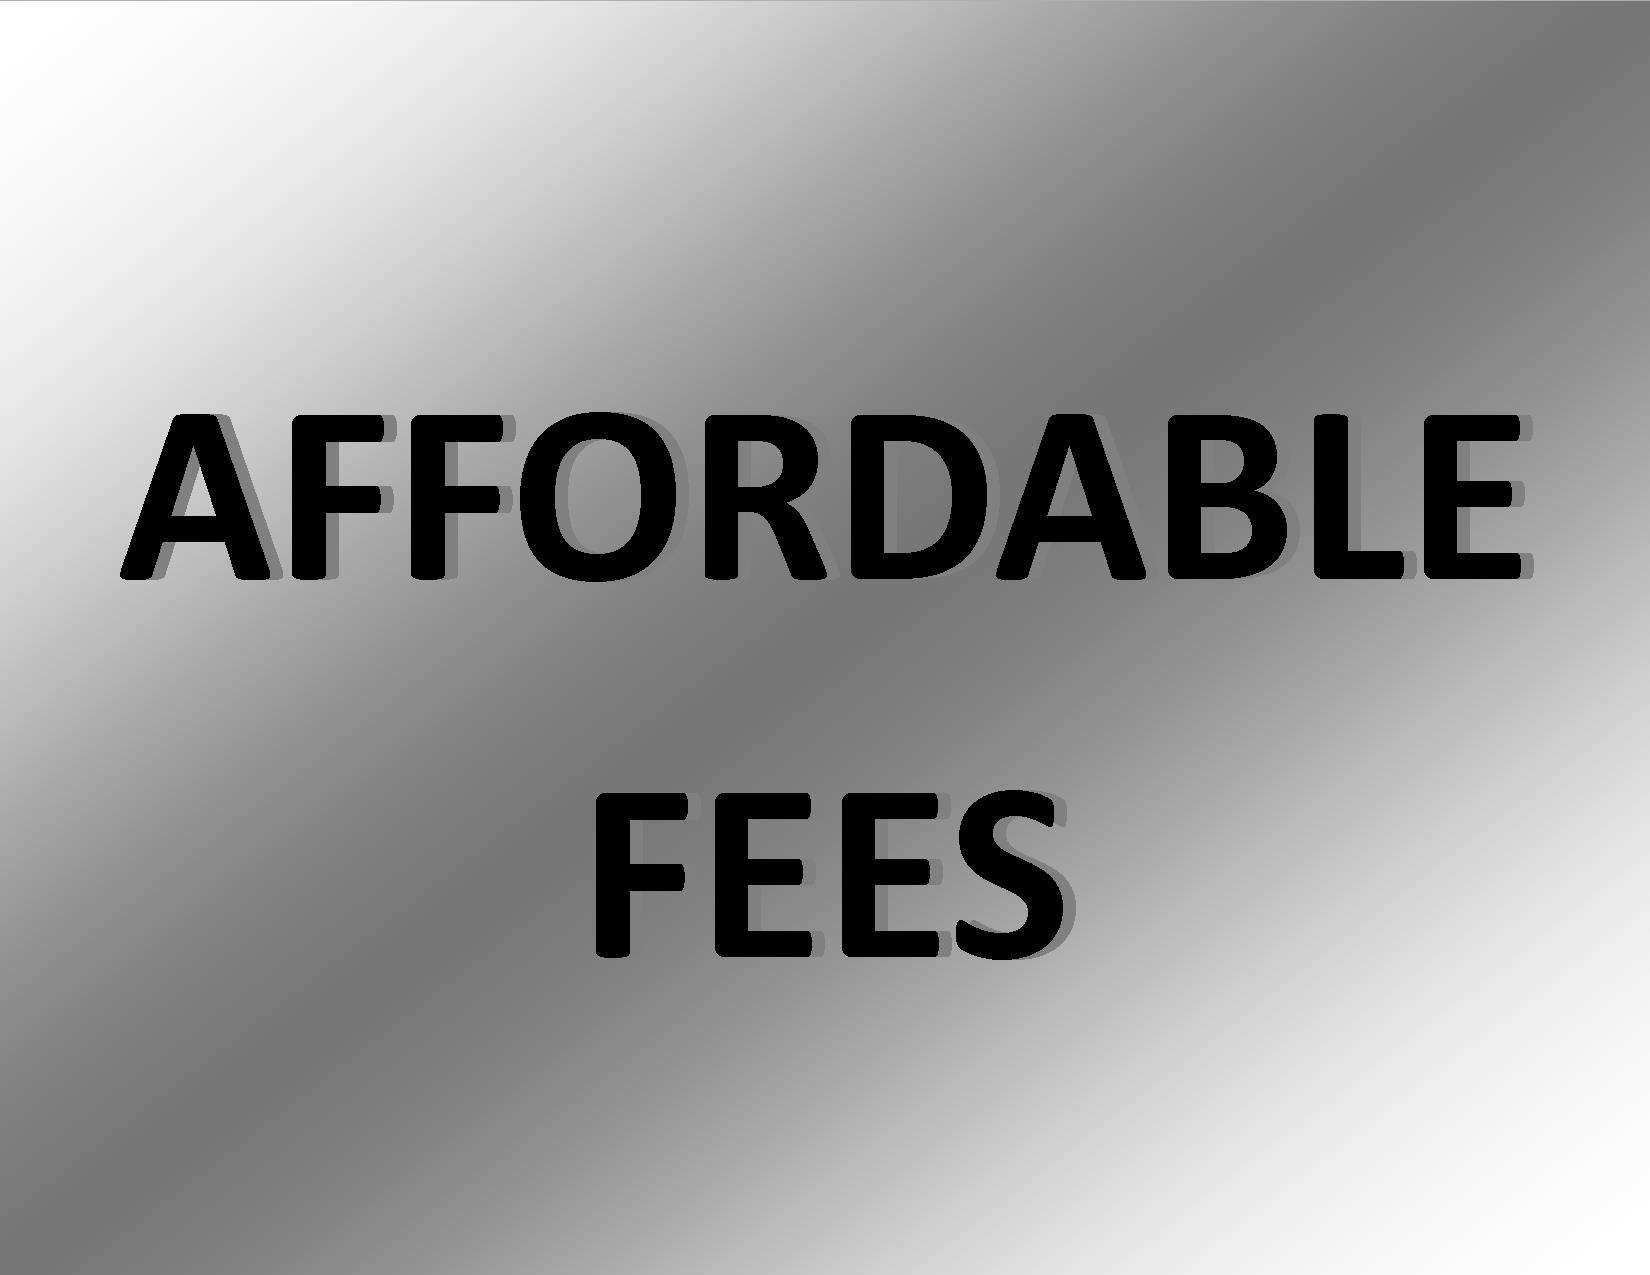 Affordable Fees